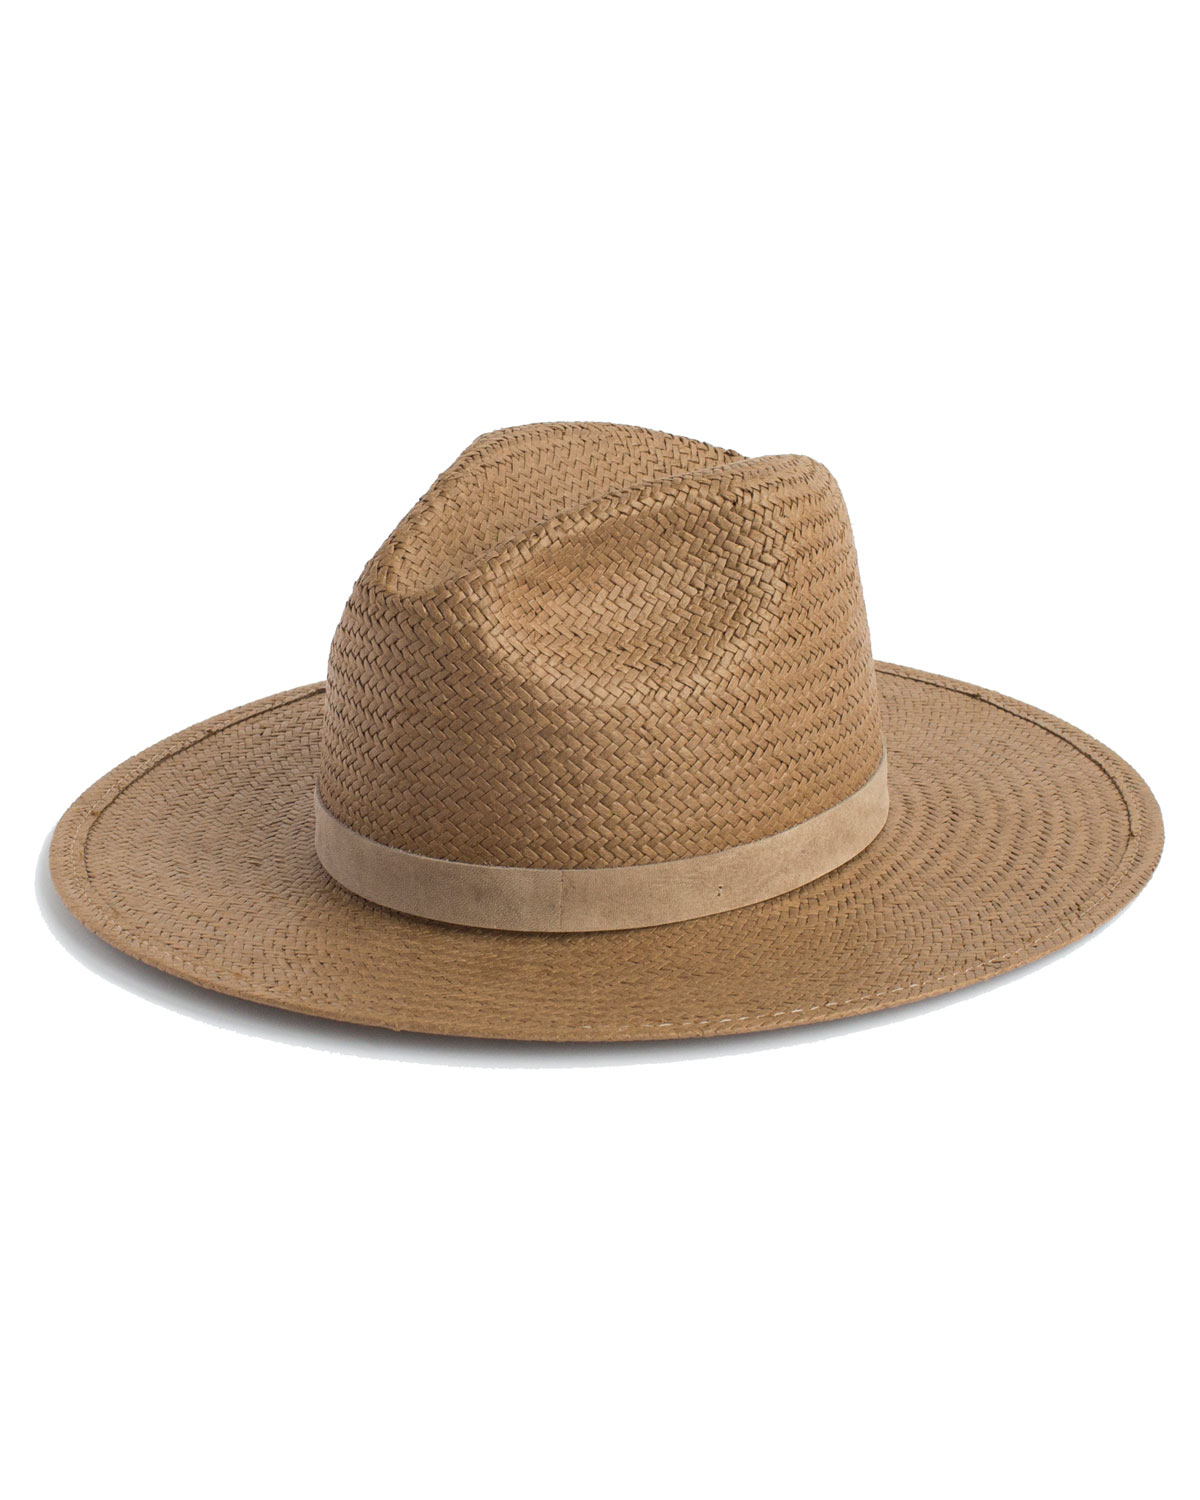 JANESSA LEONE Adriana Packable Straw Panama Hat in Brown